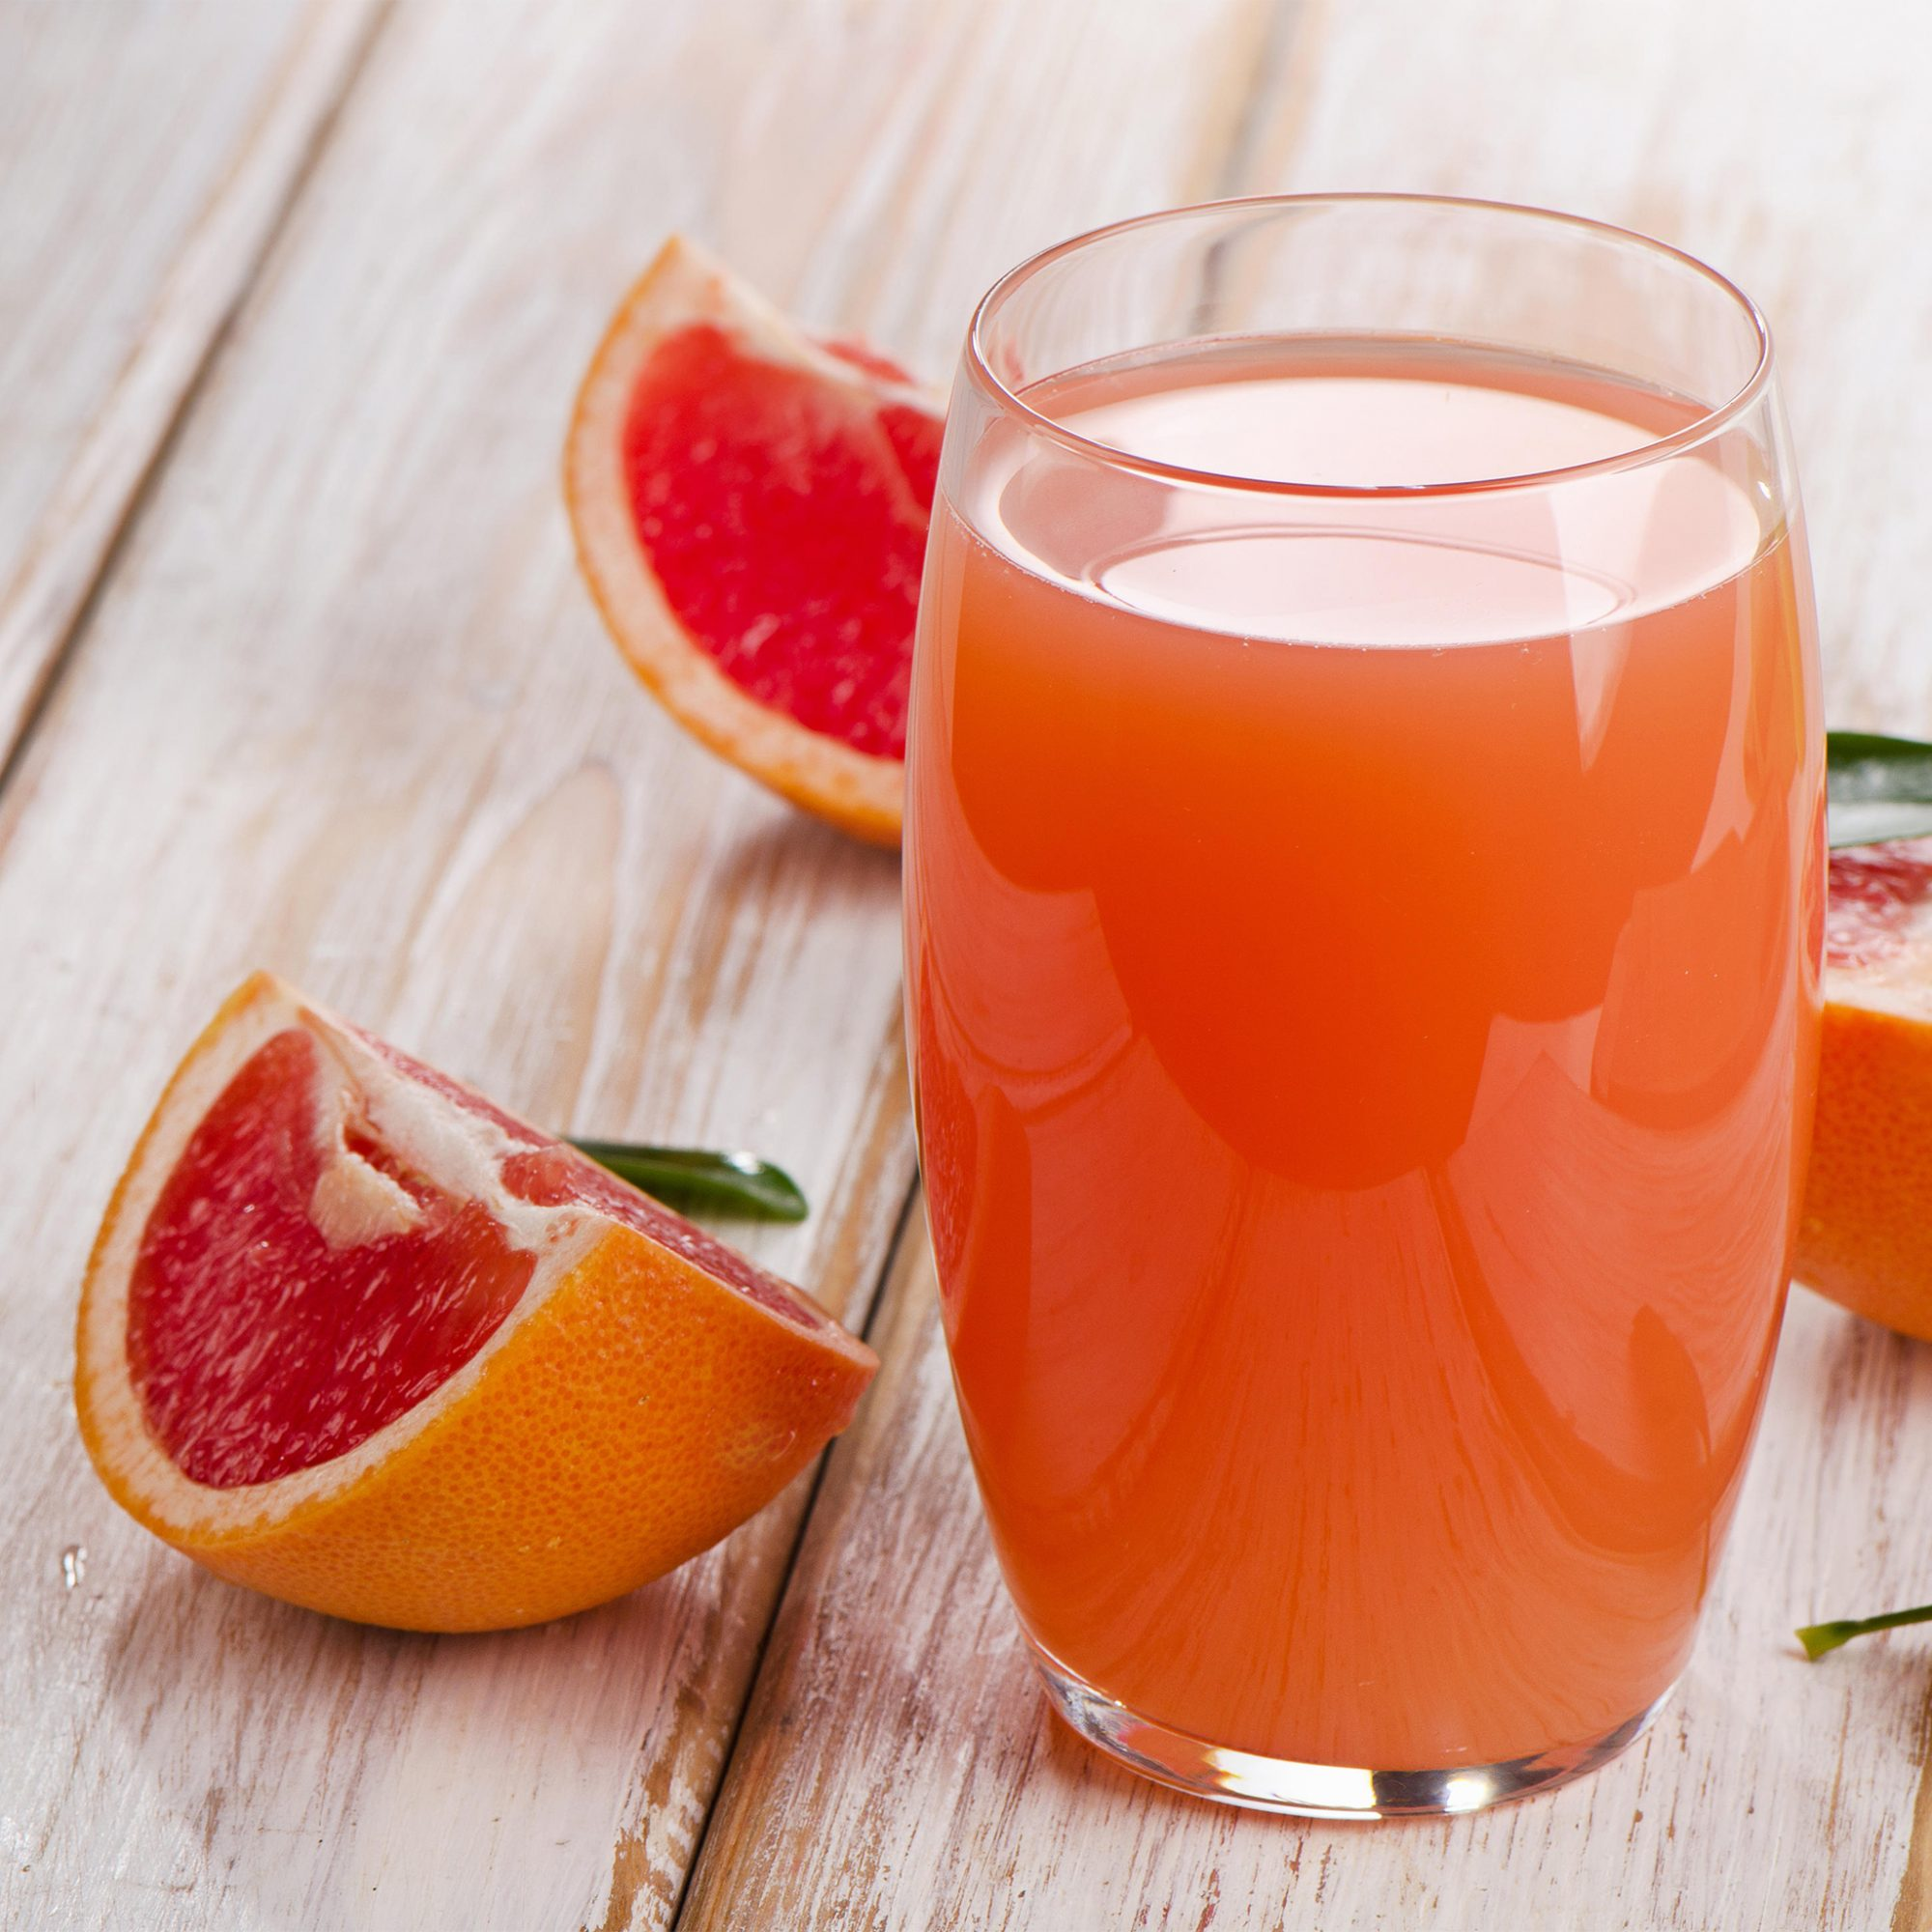 How Scientists Can Make Millions of Liters of Juice From 1 Grapefruit